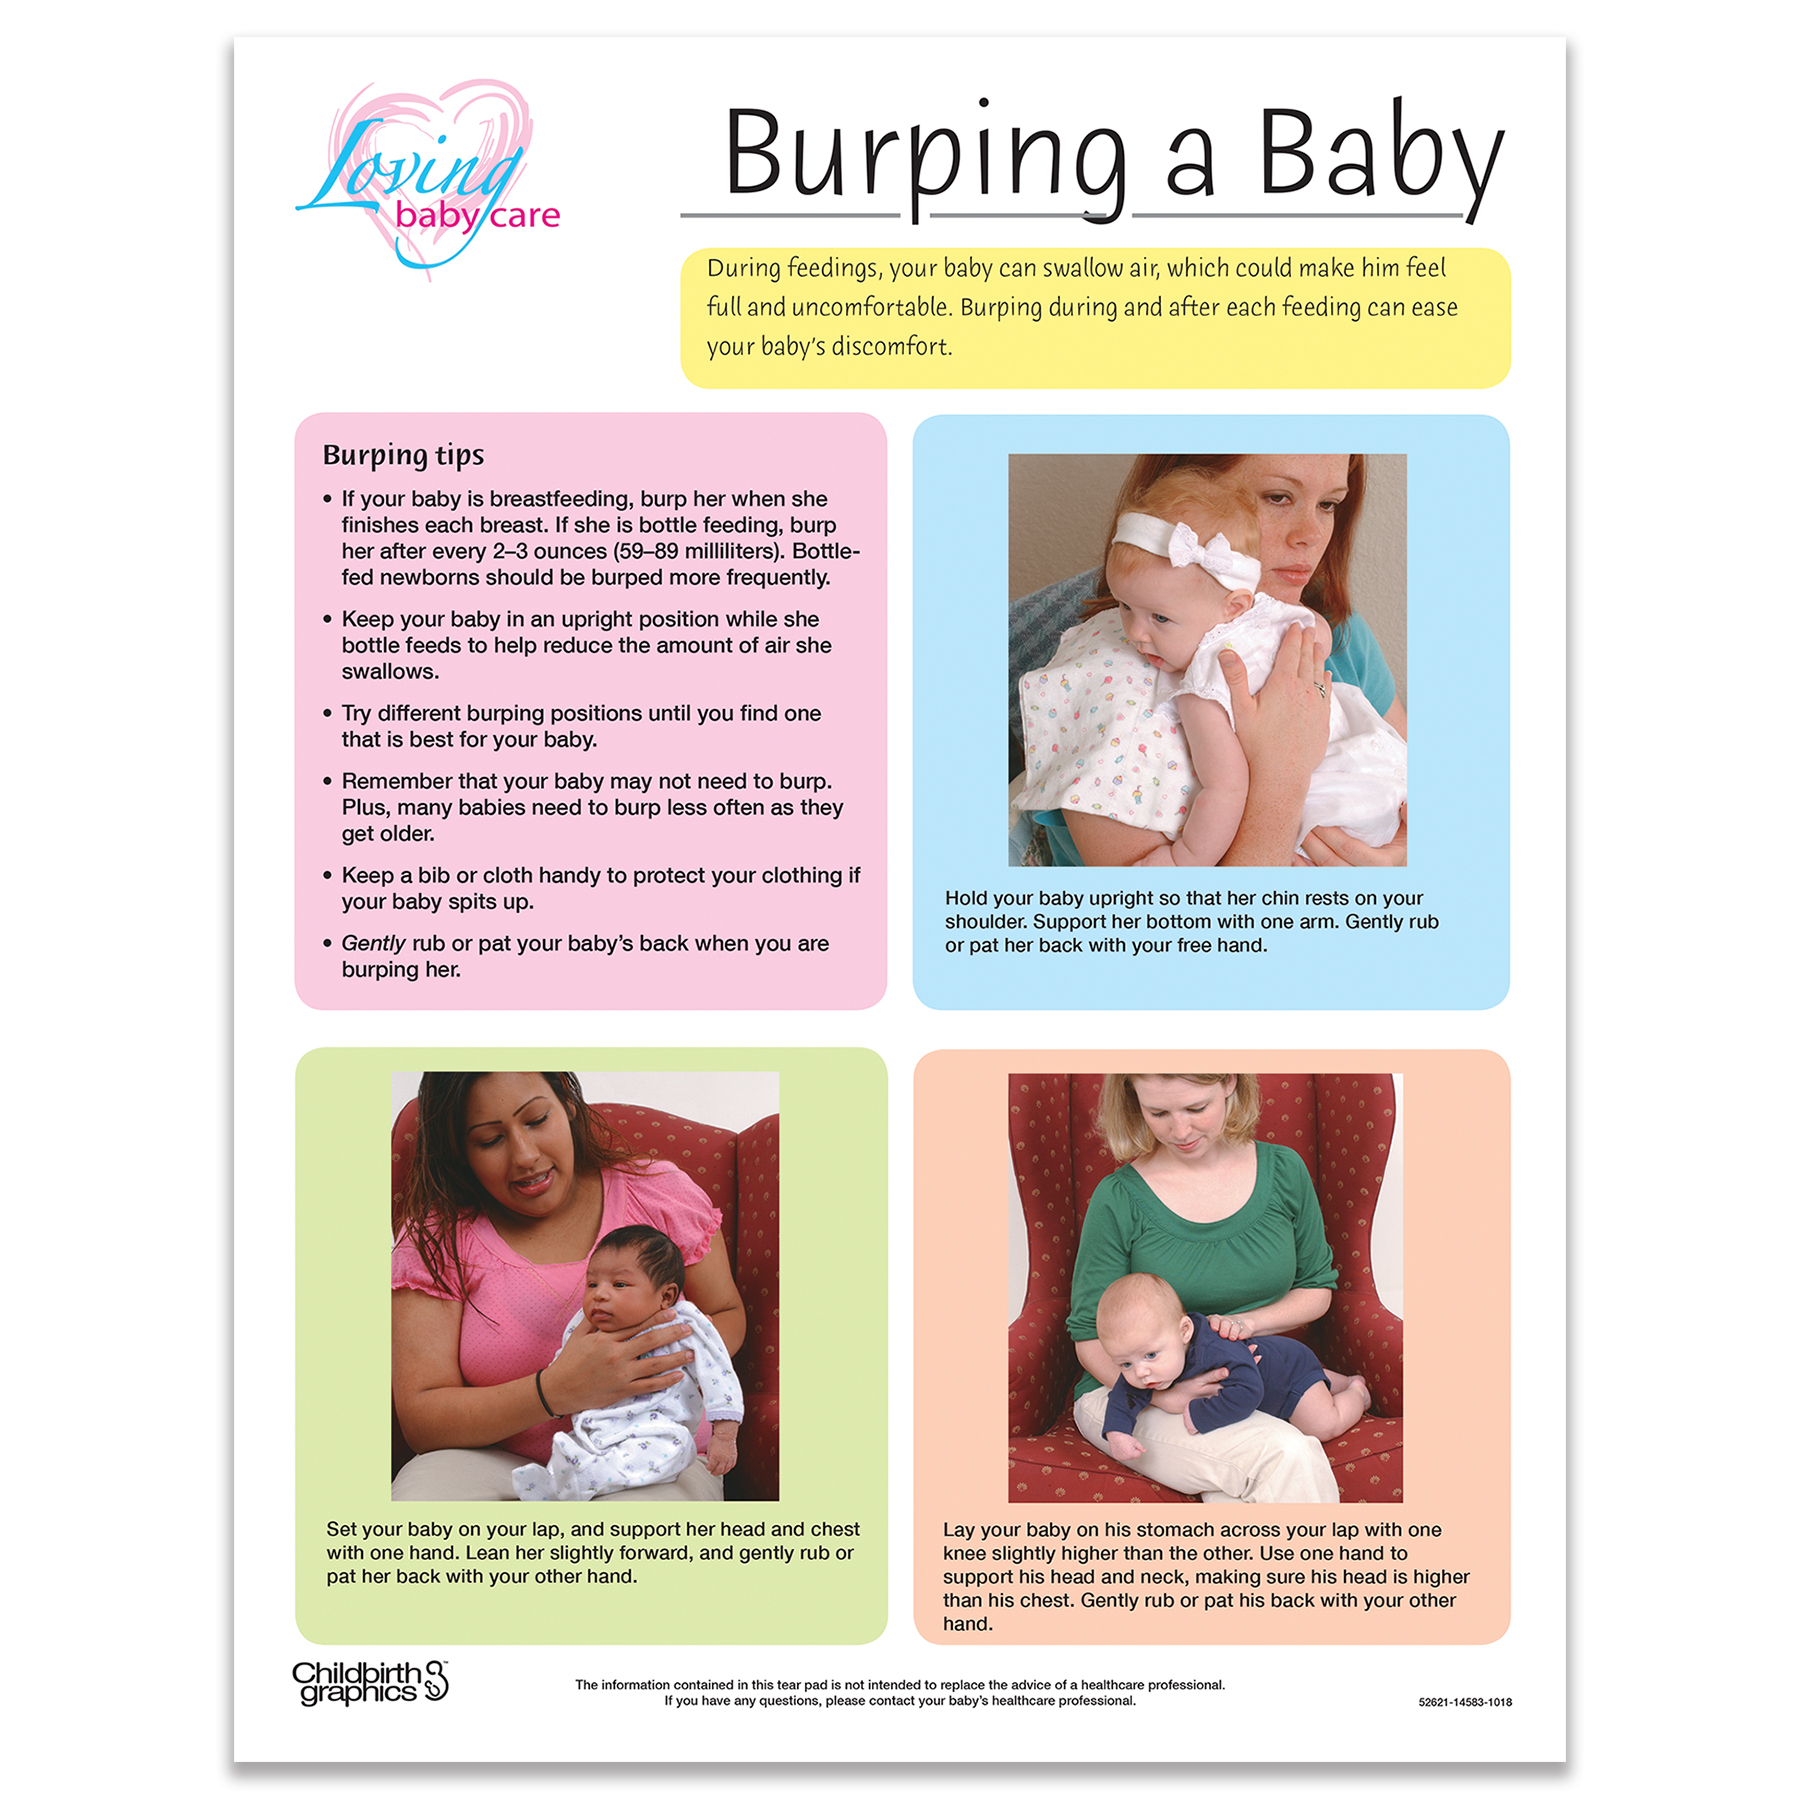 Burping a baby full-color tear pad, color blocks list tips and positions for purping, Childbirth Graphics 52621